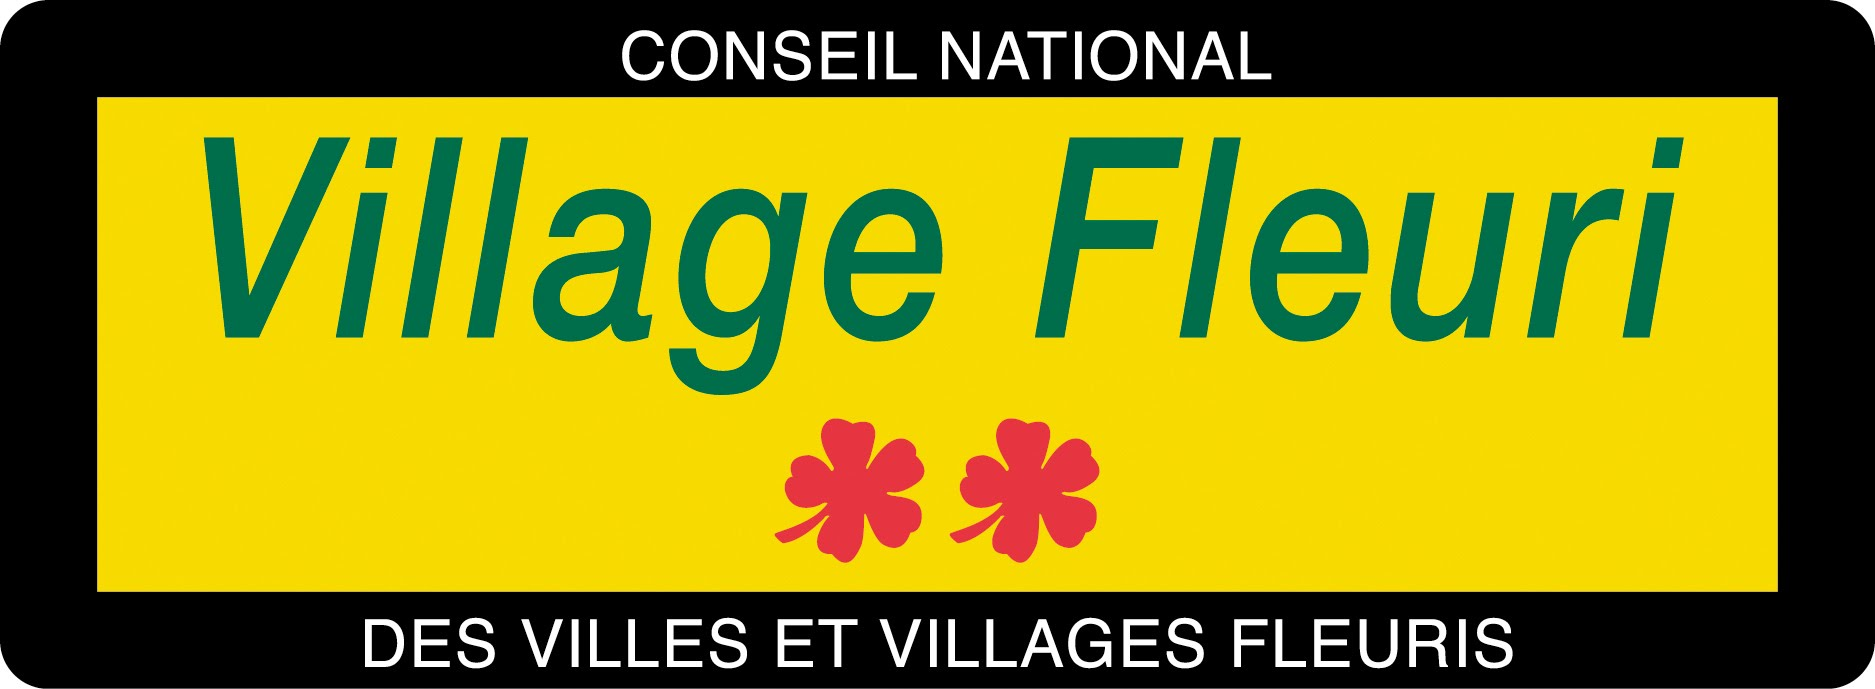 https://sites.google.com/a/commune-gondreville.fr/site-commune/villes-villages-fleuris